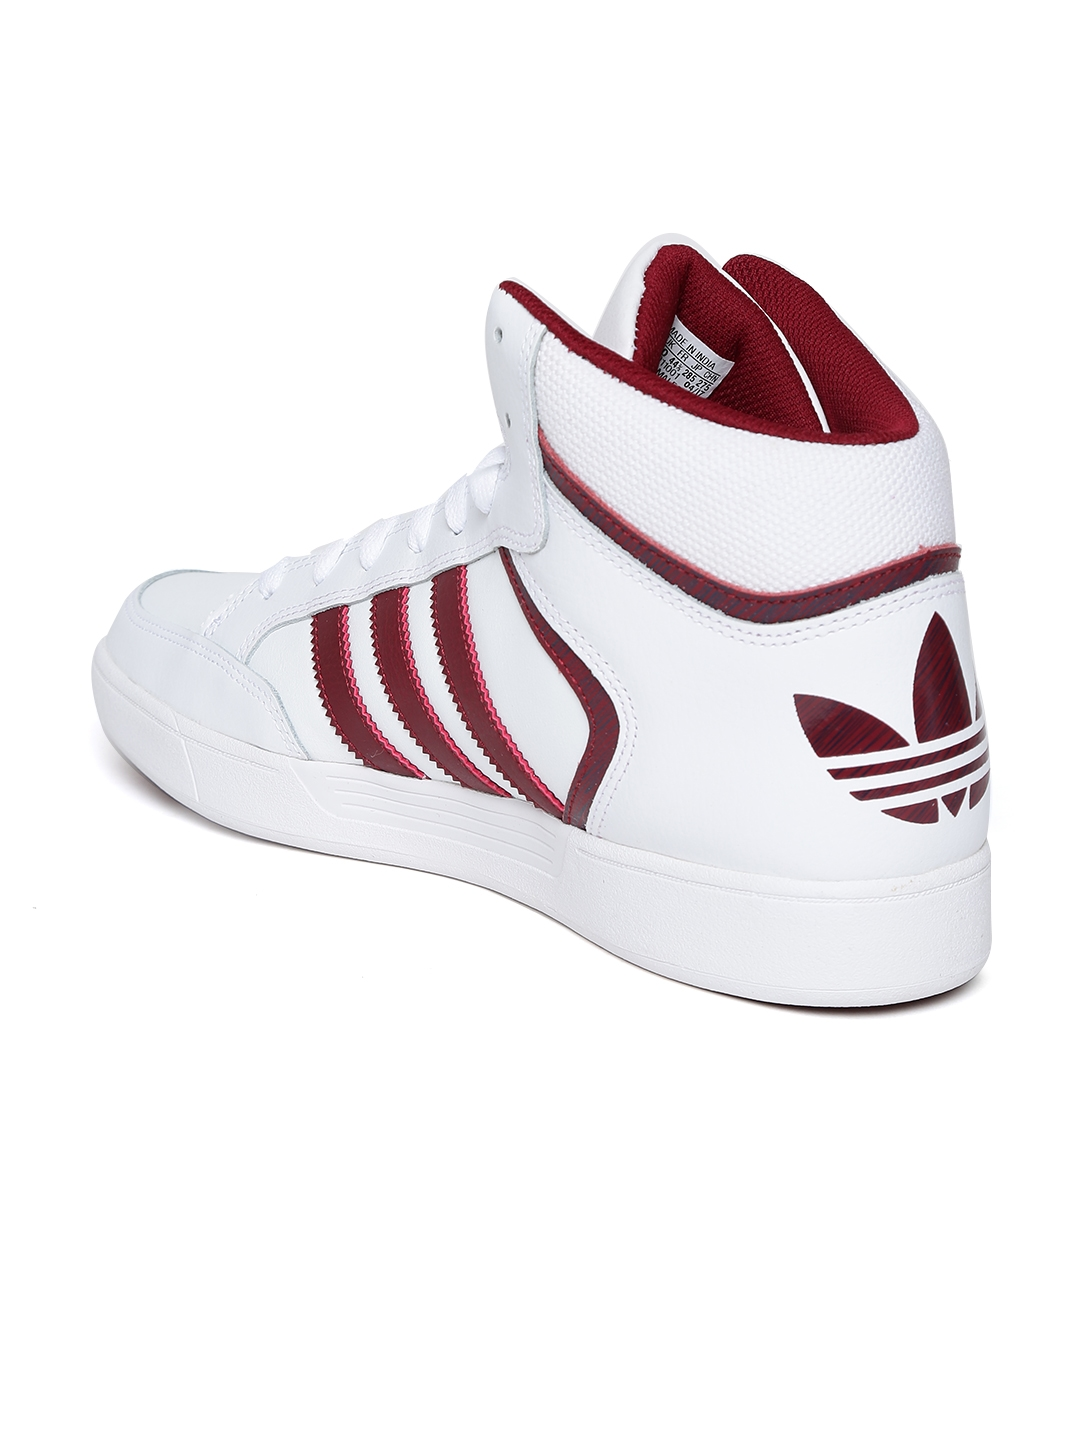 403a8d2b69d Buy ADIDAS Originals Men White Varial Mid Skateboarding Shoes ...